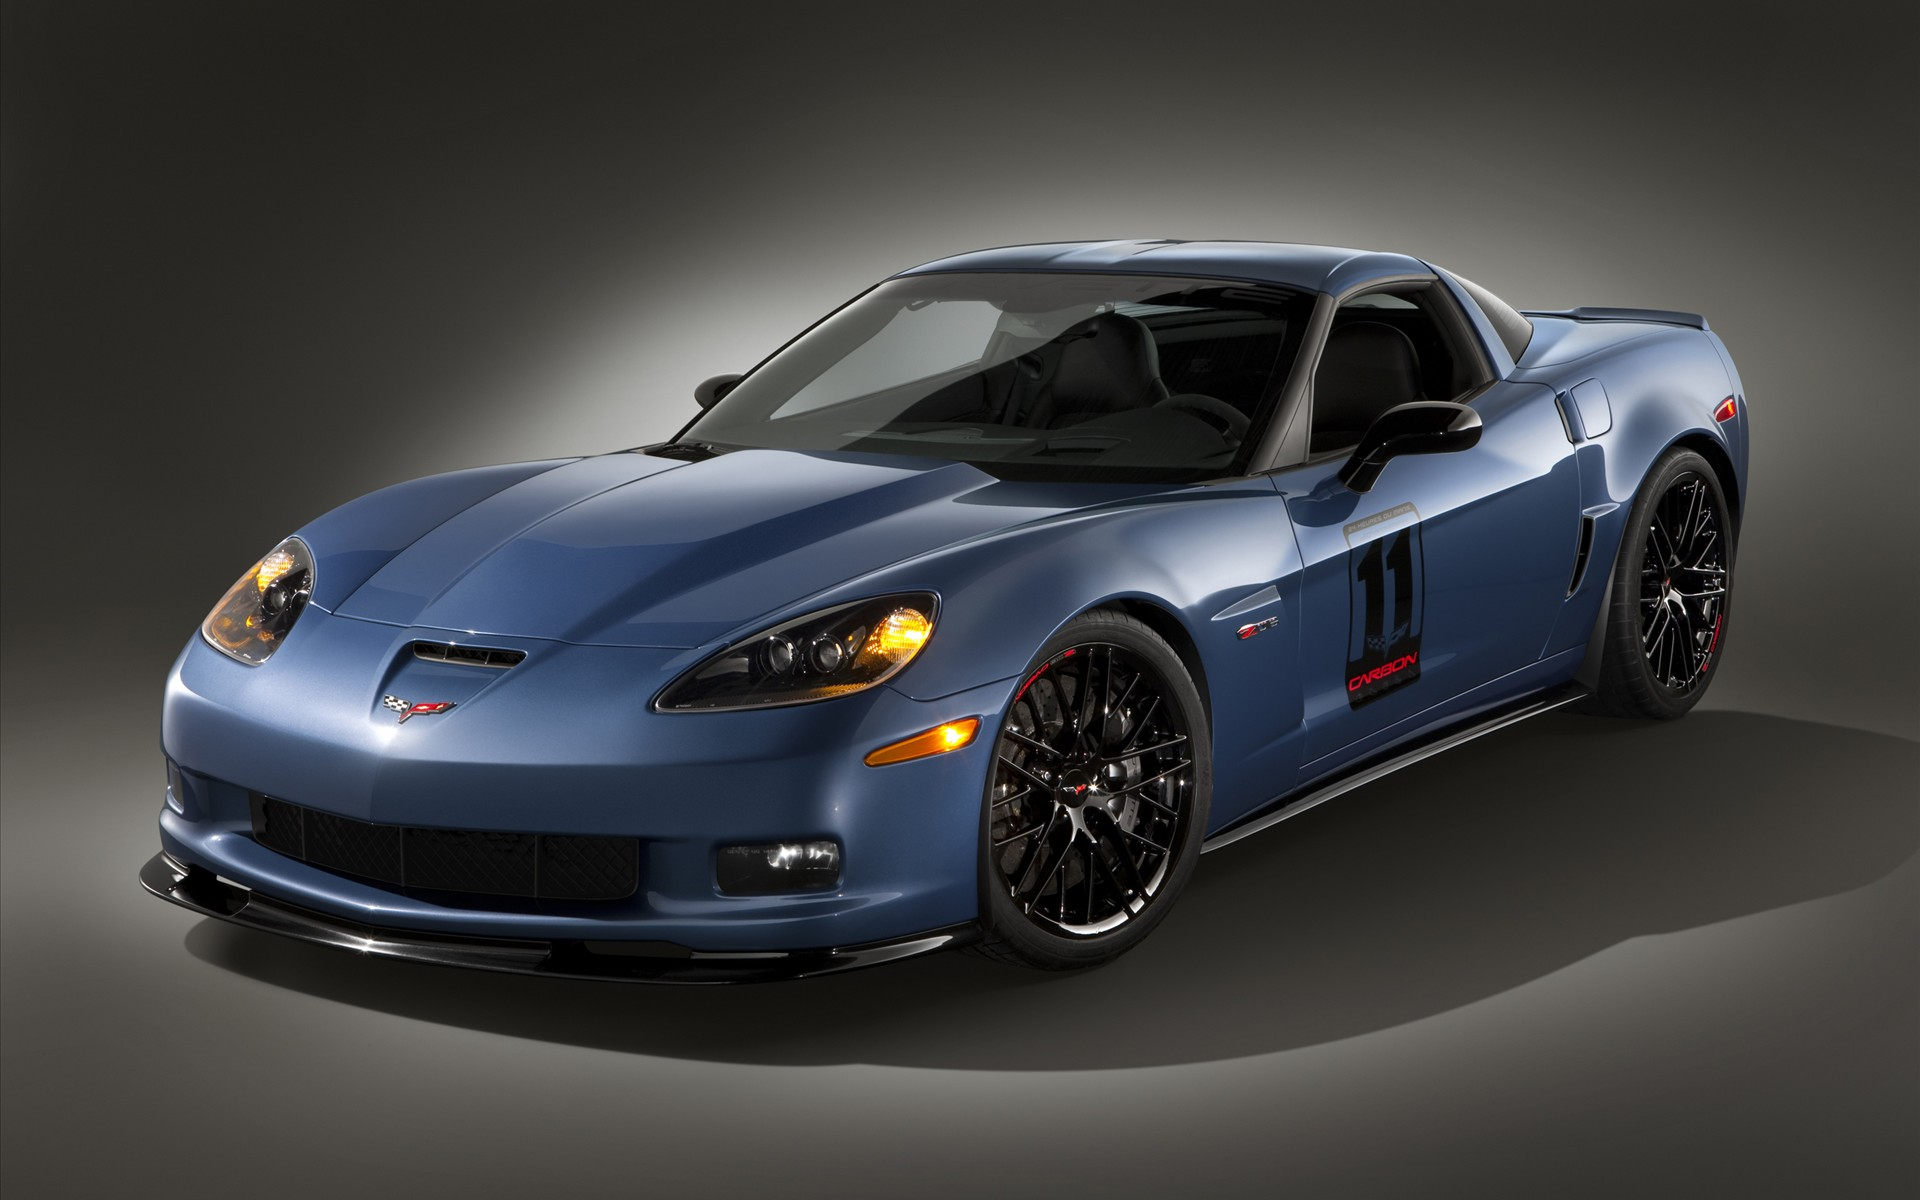 Corvette Stingray Z06 Wallpaper Desktop 111 Wallpaper Cool 1920x1200